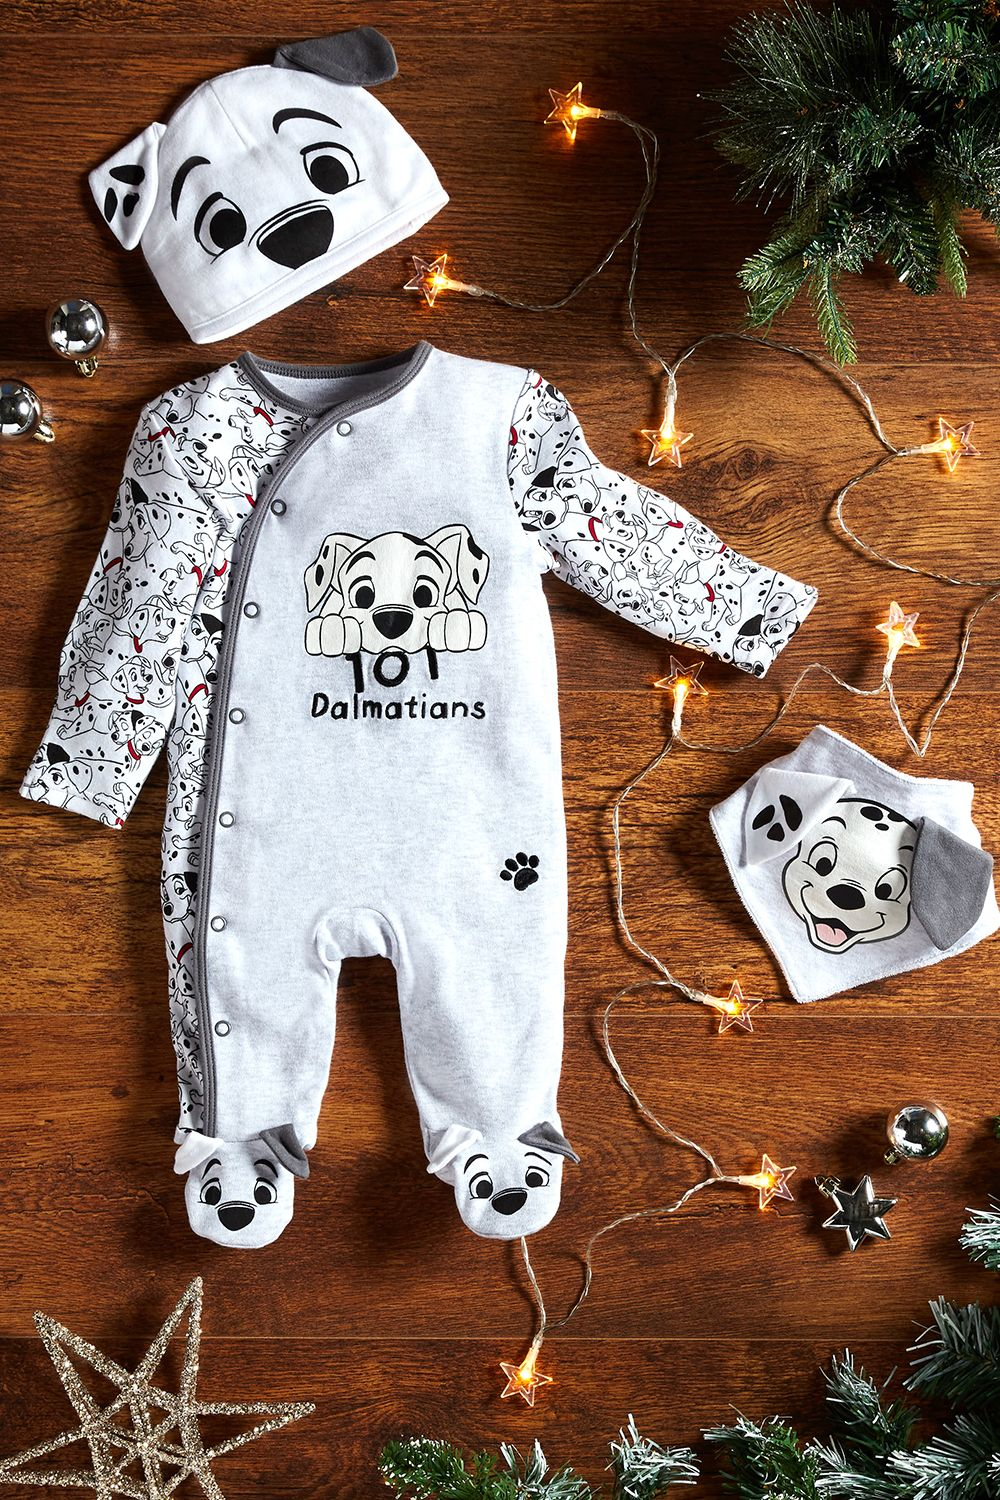 ade5e0013 Primark, Primark baby, baby, kids, kidswear, license, Harry Potter, Disney,  101 dalmations, Hary Potter Baby outfits, sleepsuits, dribble bibs, romper,  ...